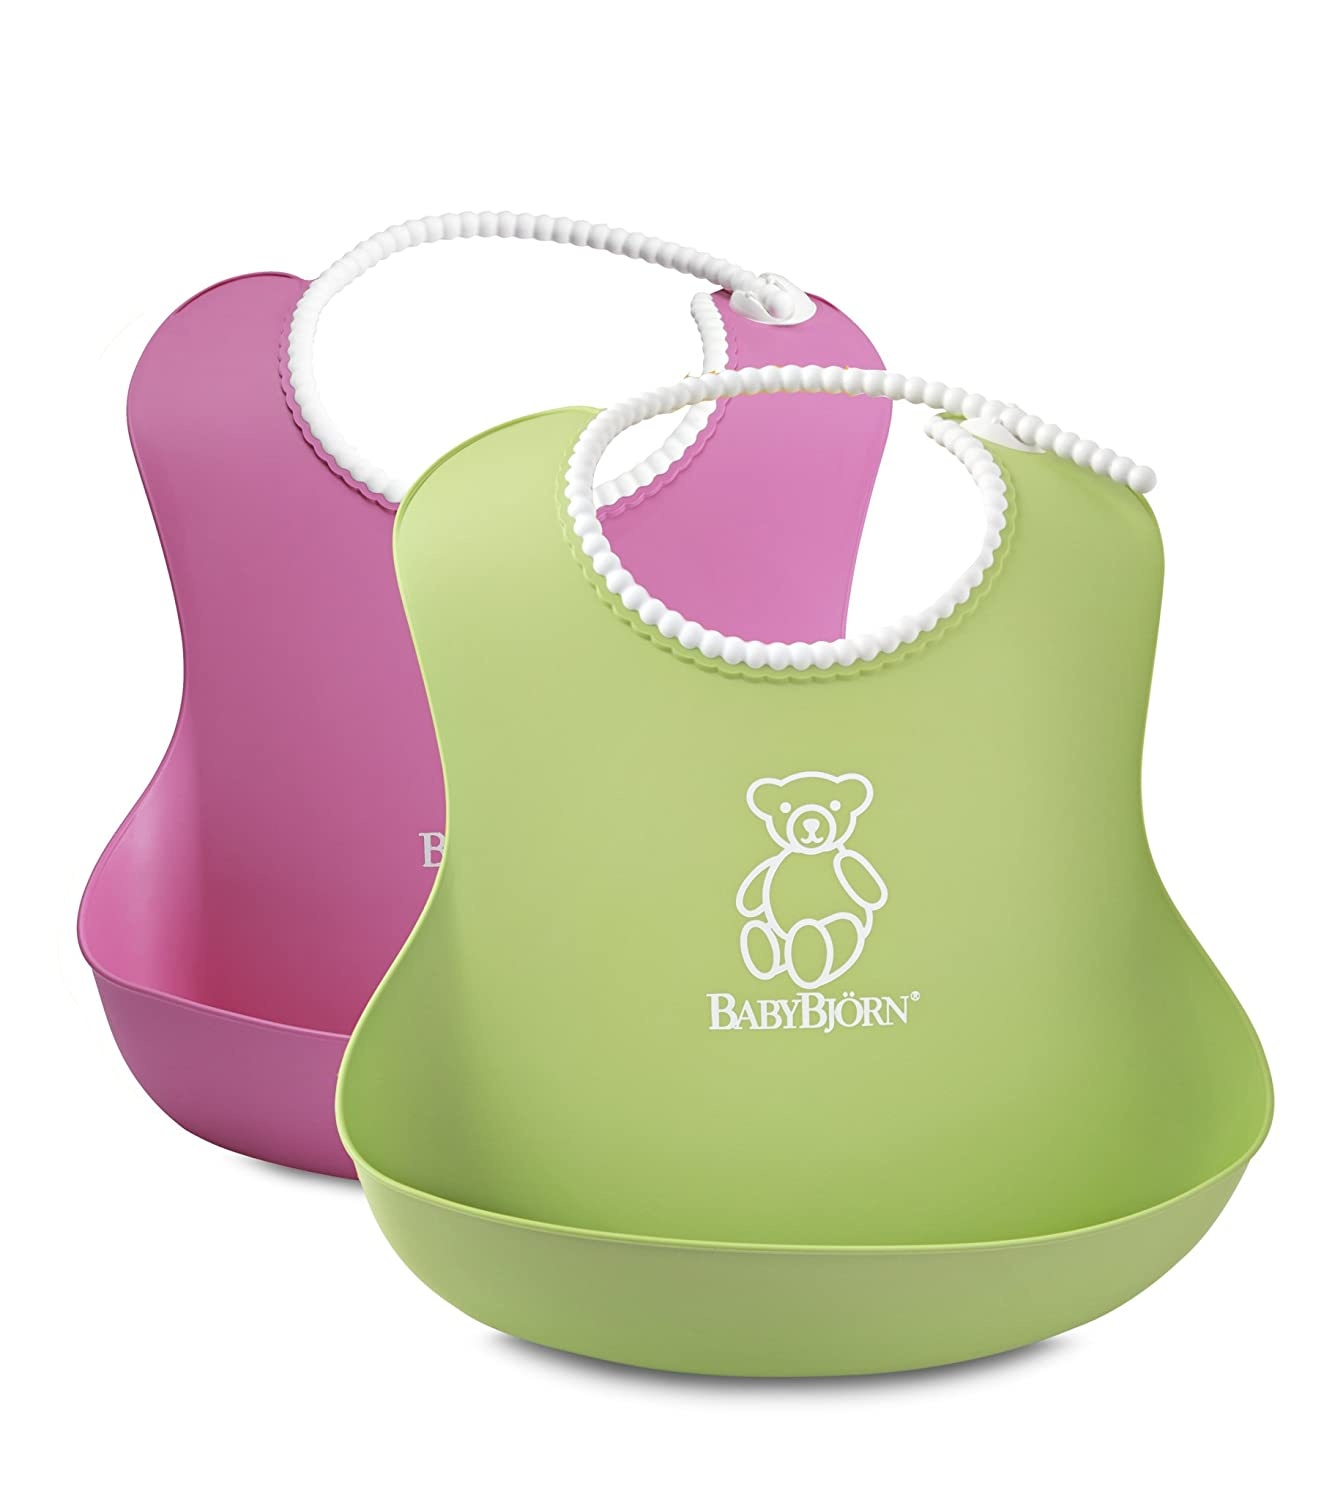 BABYBJORN Soft Bib - Green/Yellow 2 pack 046504US